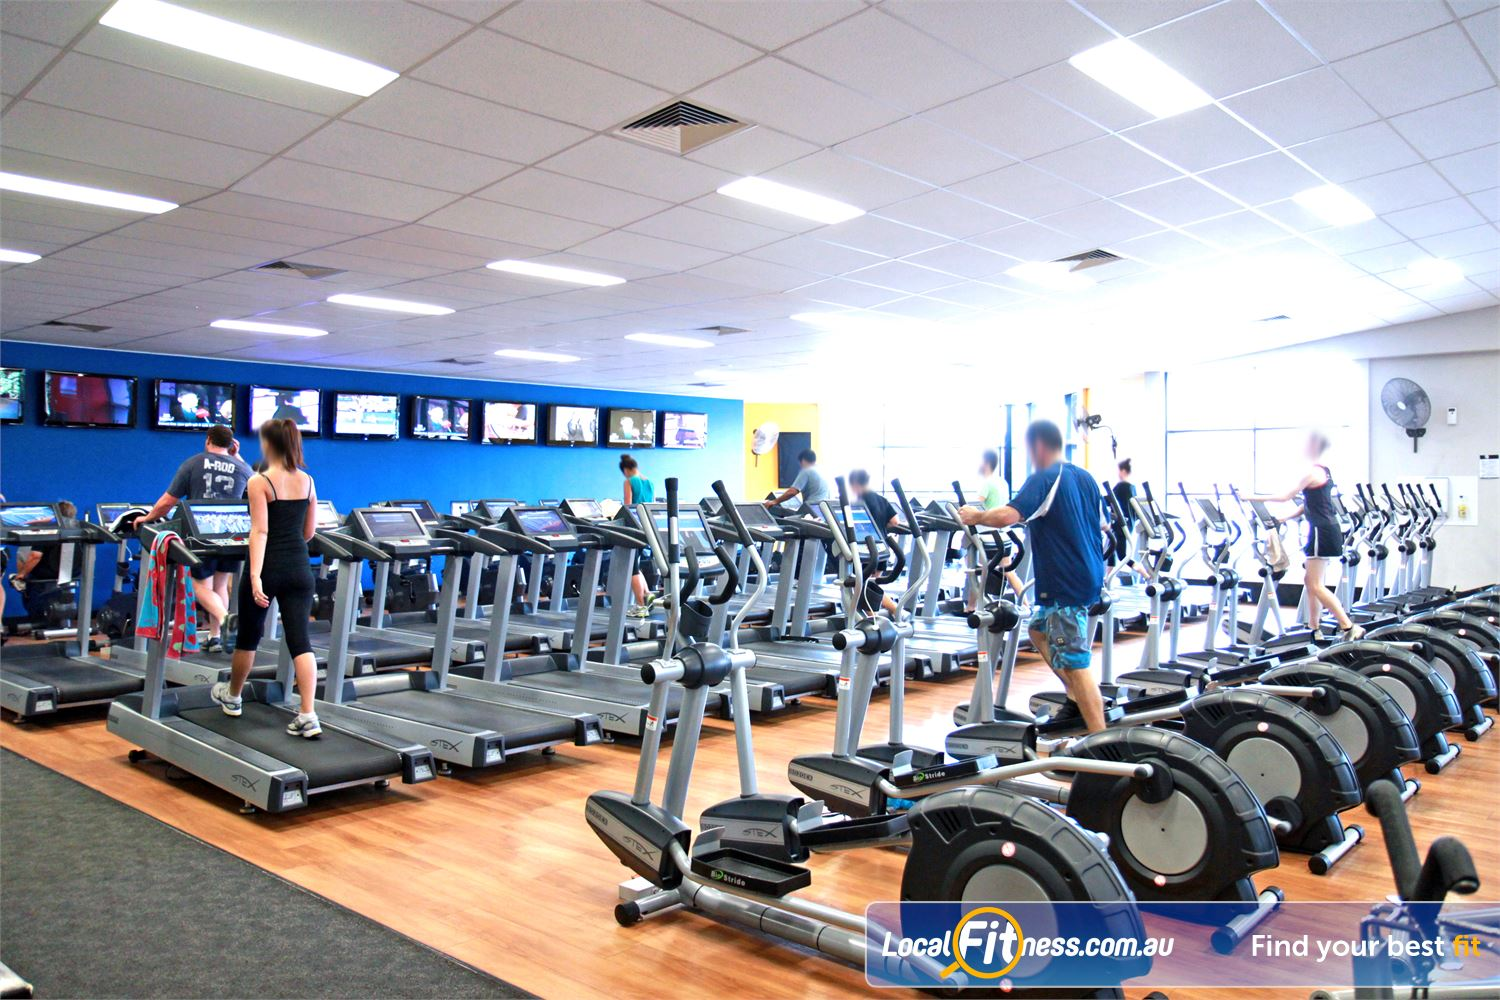 Goodlife Health Clubs Near Wellers Hill Enjoy level 2 views from our Holland Park gym cardio theatre.